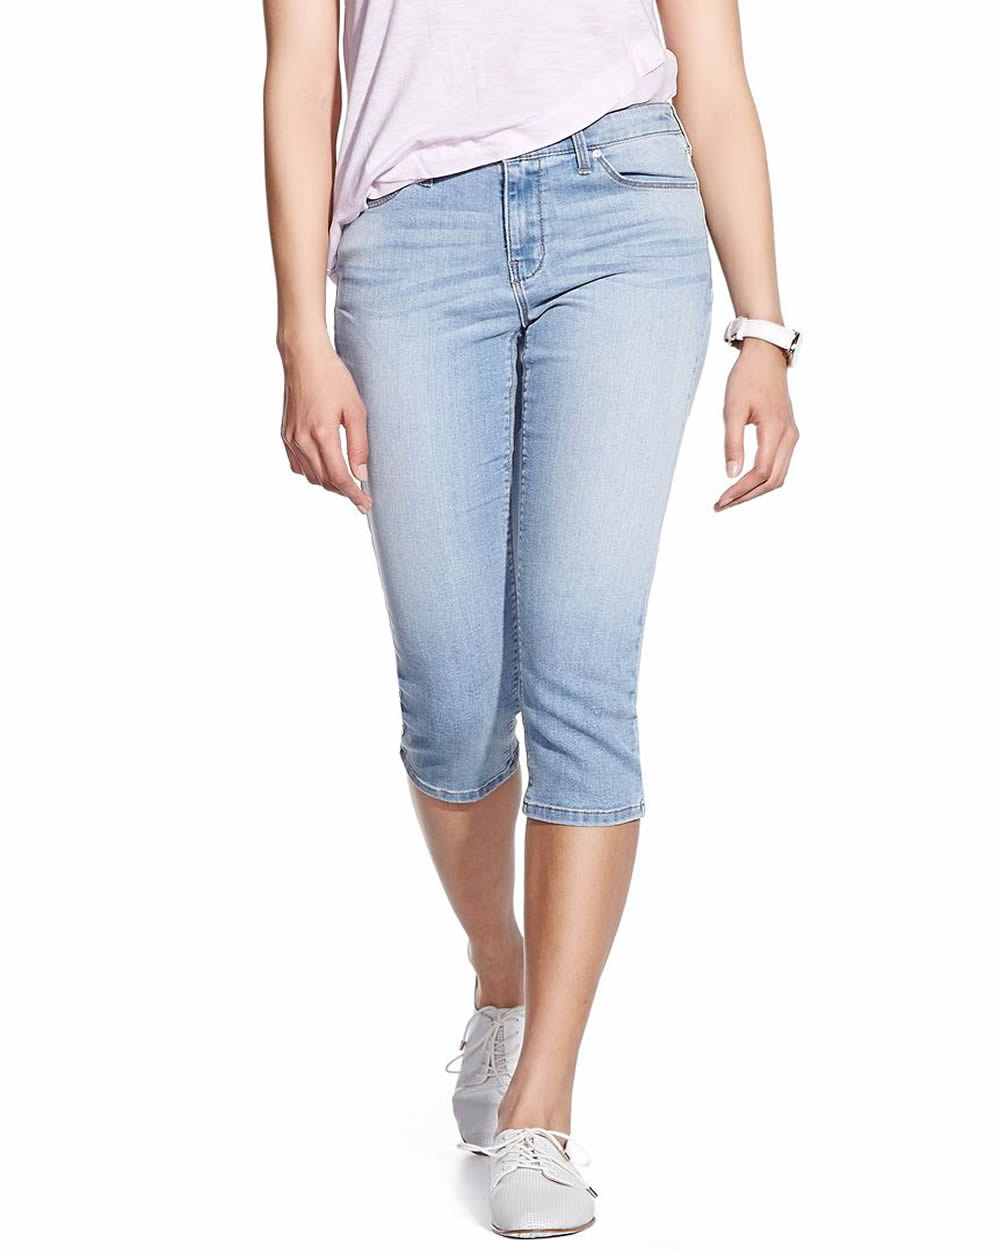 Capris & Cropped Petite Jeans for women at Macy's come in all styles and sizes. Shop a great selection of trendy women's jeans in petite sizes and find jeans that fit you best! Free shipping - Macy's Star Rewards Members!